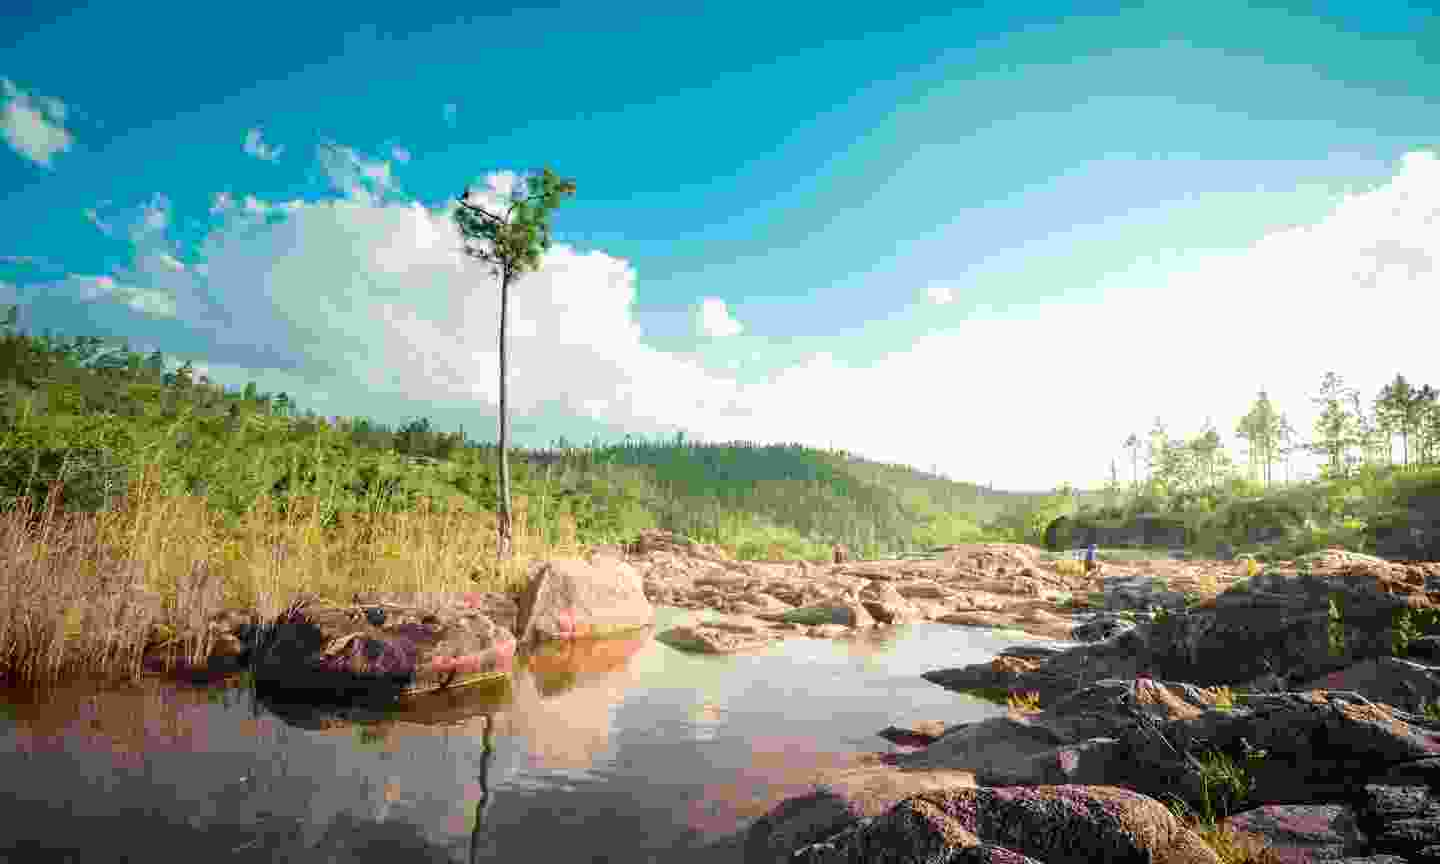 Rio On Pools located in the remote, hard to reach Mountain Pine Ridge Forest, Belize (Shutterstock)